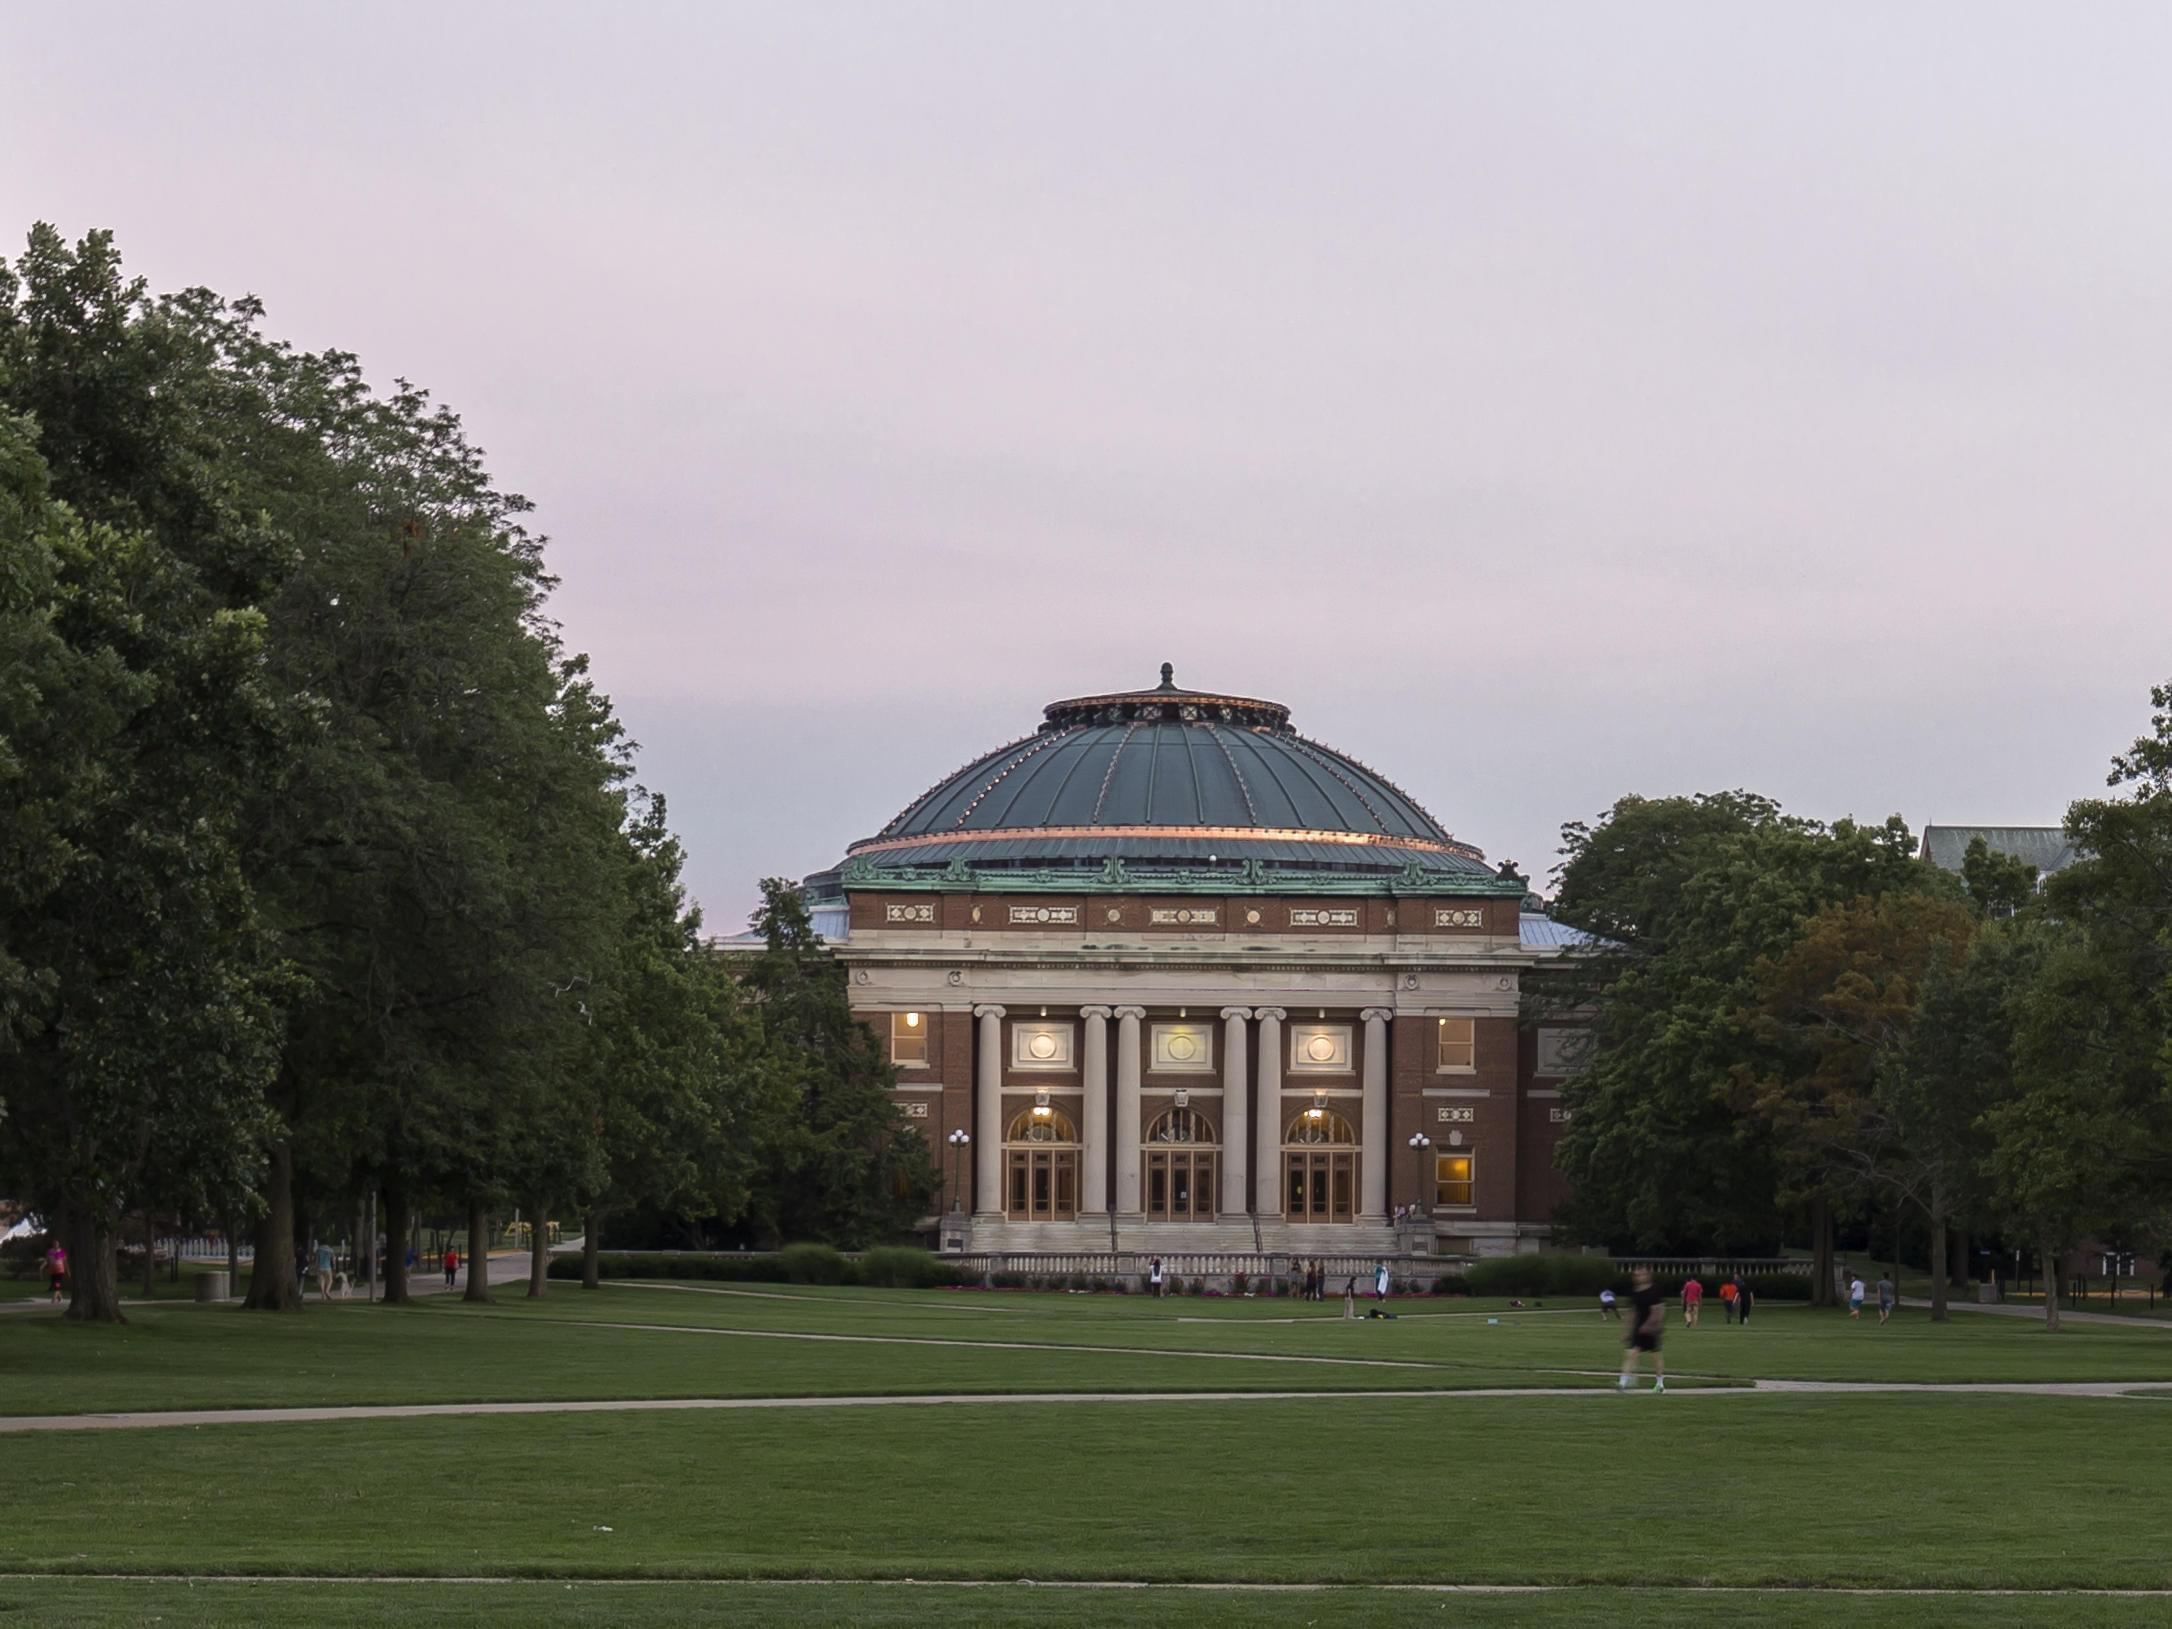 Foellinger Auditorium, University of Illinois at Urbana-Champaign.